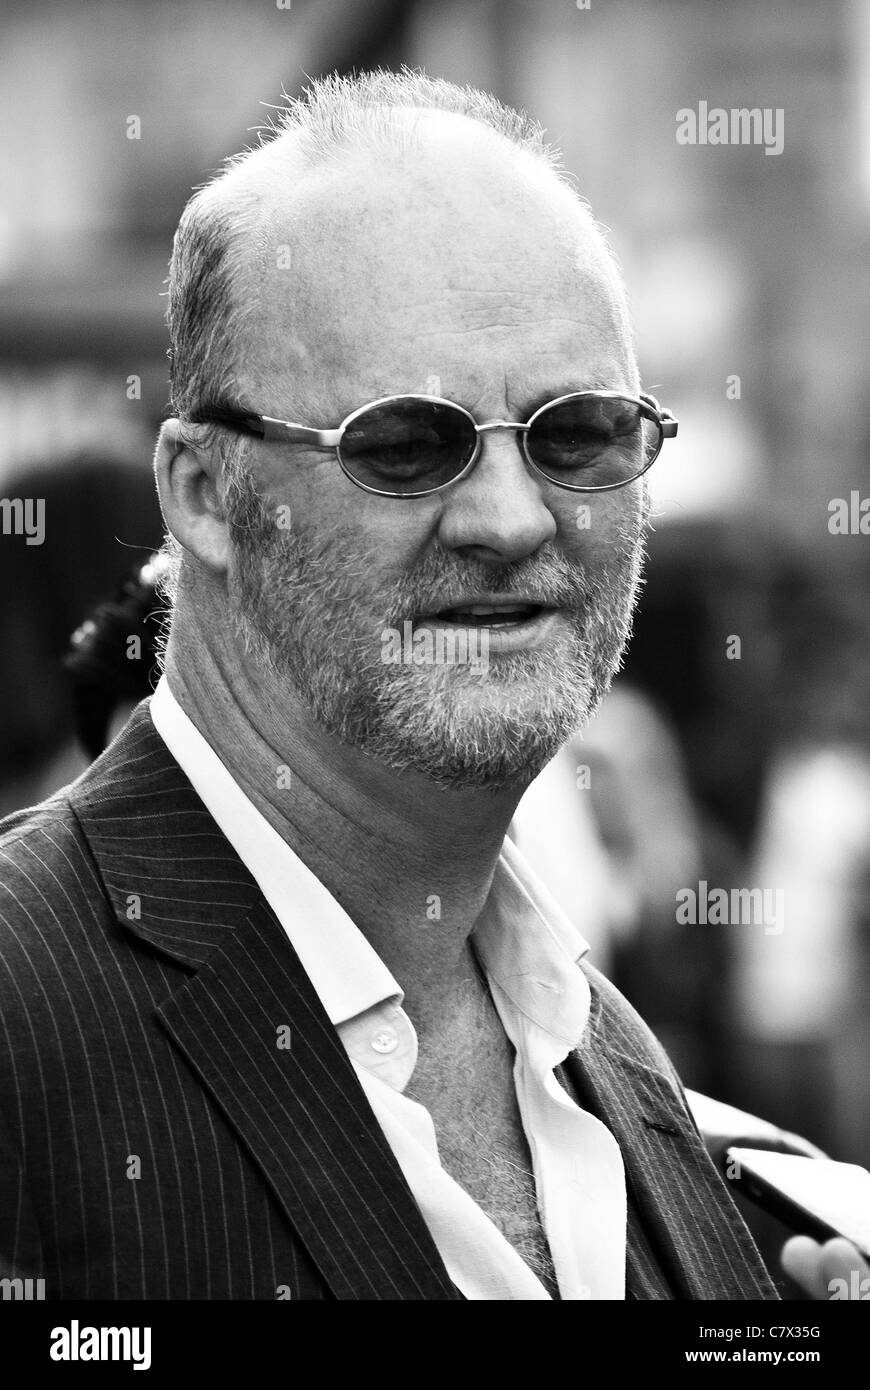 Tim McInnerny attends the UK Premiere of Johnny English Reborn at The Empire, Leicester Square, London on 2nd October - Stock Image